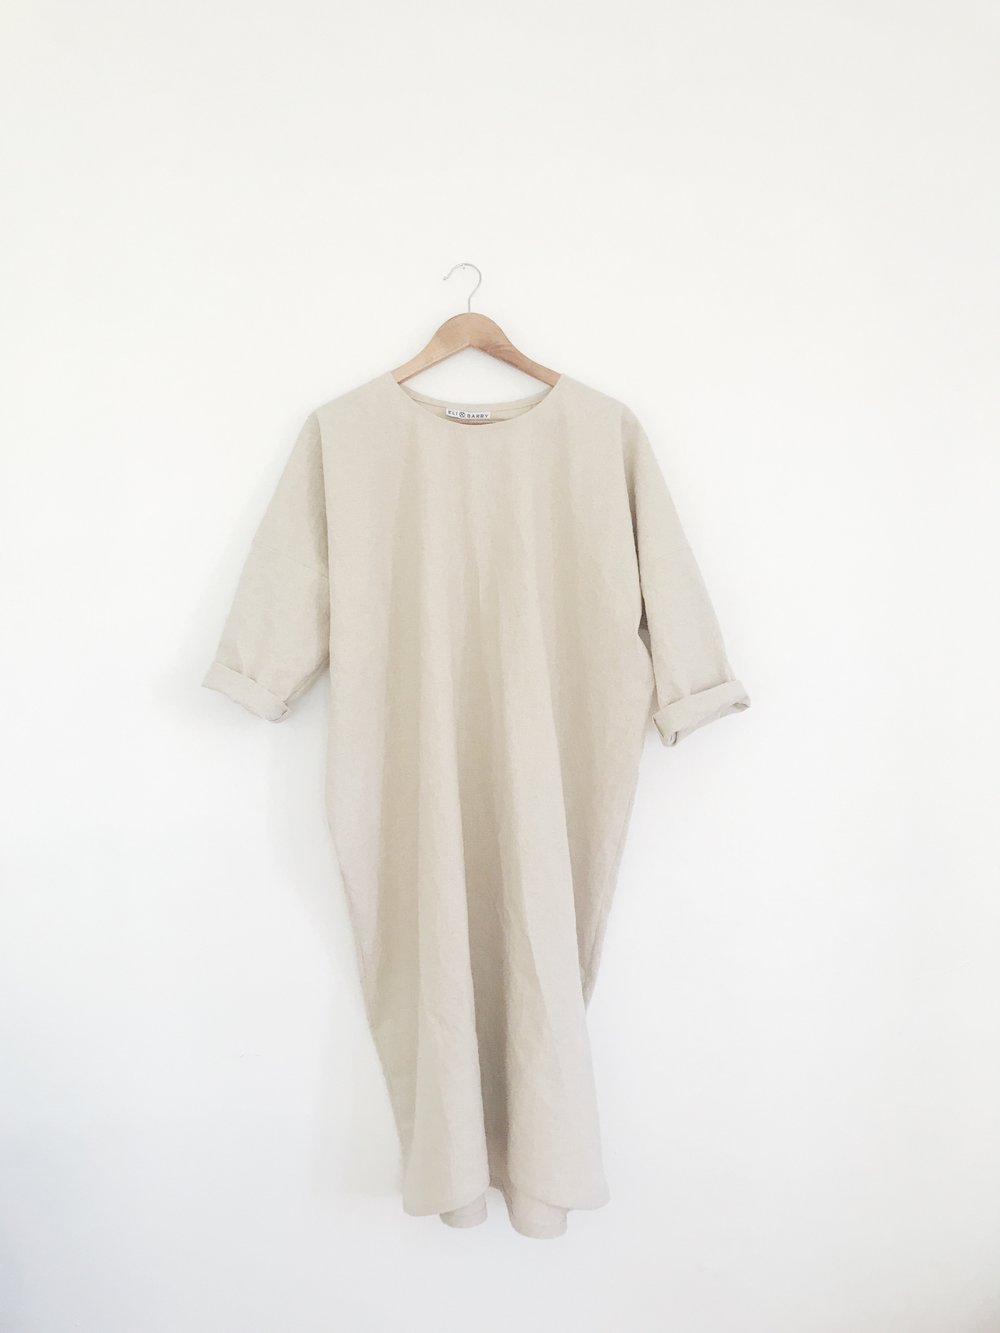 dress 1, a style I had available last spring, will be coming back in an organic linen cotton